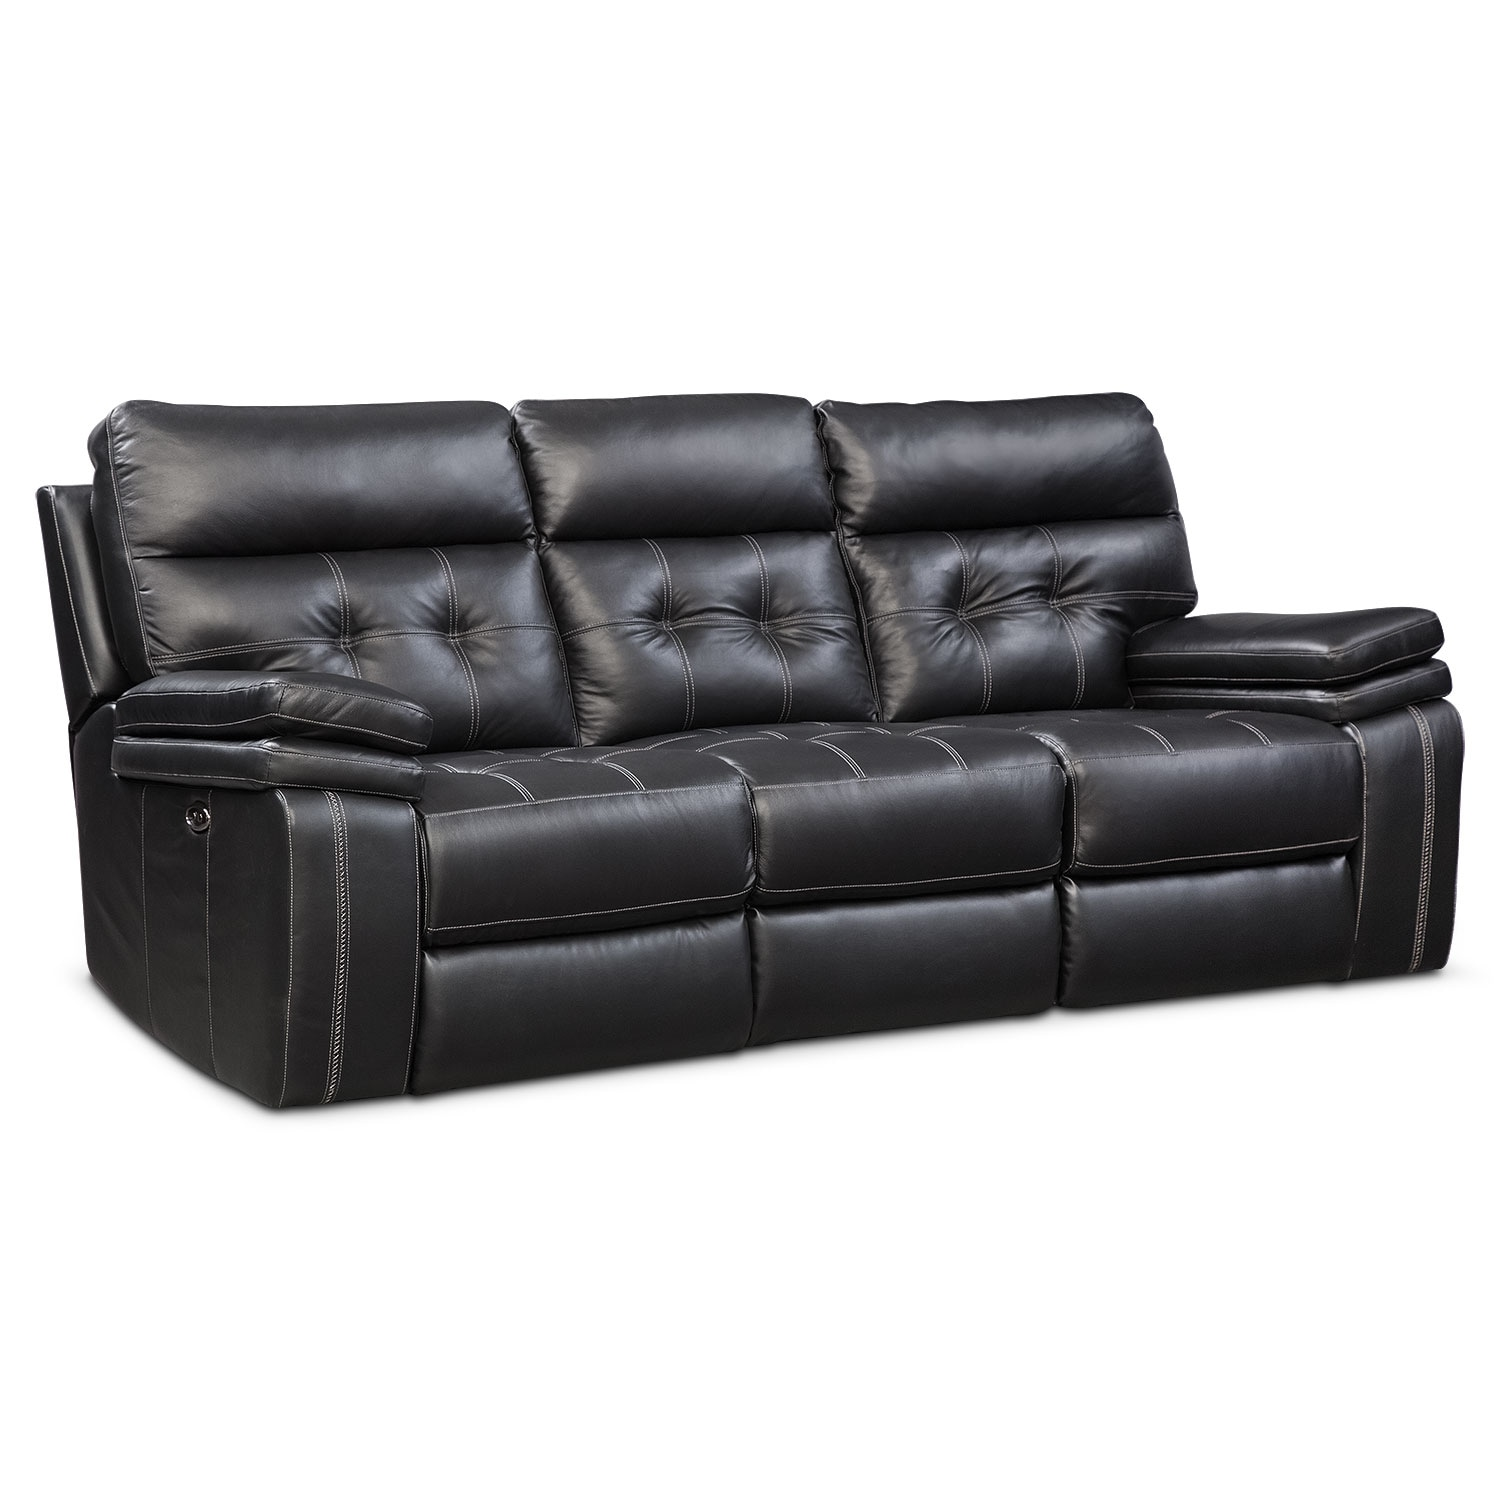 Sofas Under $300 #37 - Brisco Power Reclining Sofa - Black